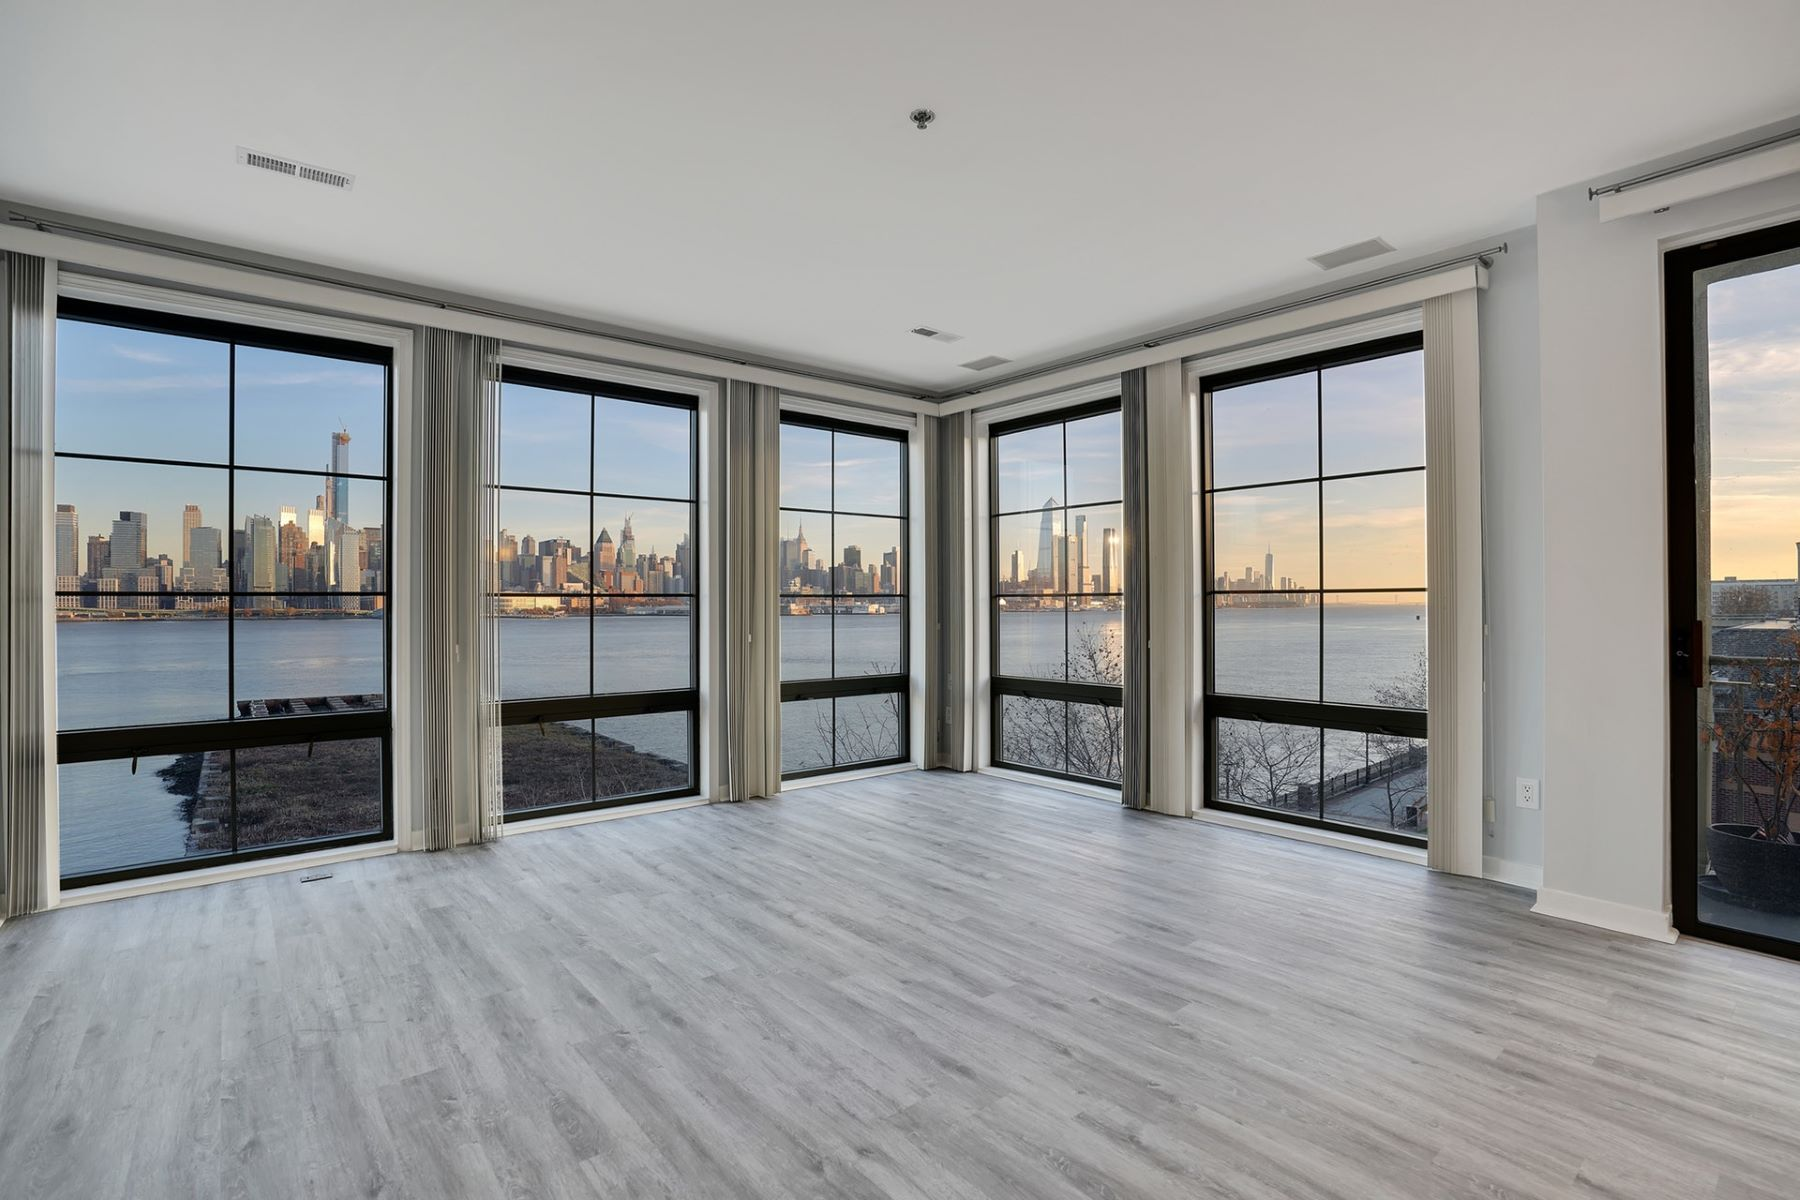 Propriété pour l Vente à Enjoy this stunning South East home with NYC and the Hudson River views i 24 Avenue at Port Imperial #303, West New York, New Jersey 07093 États-Unis